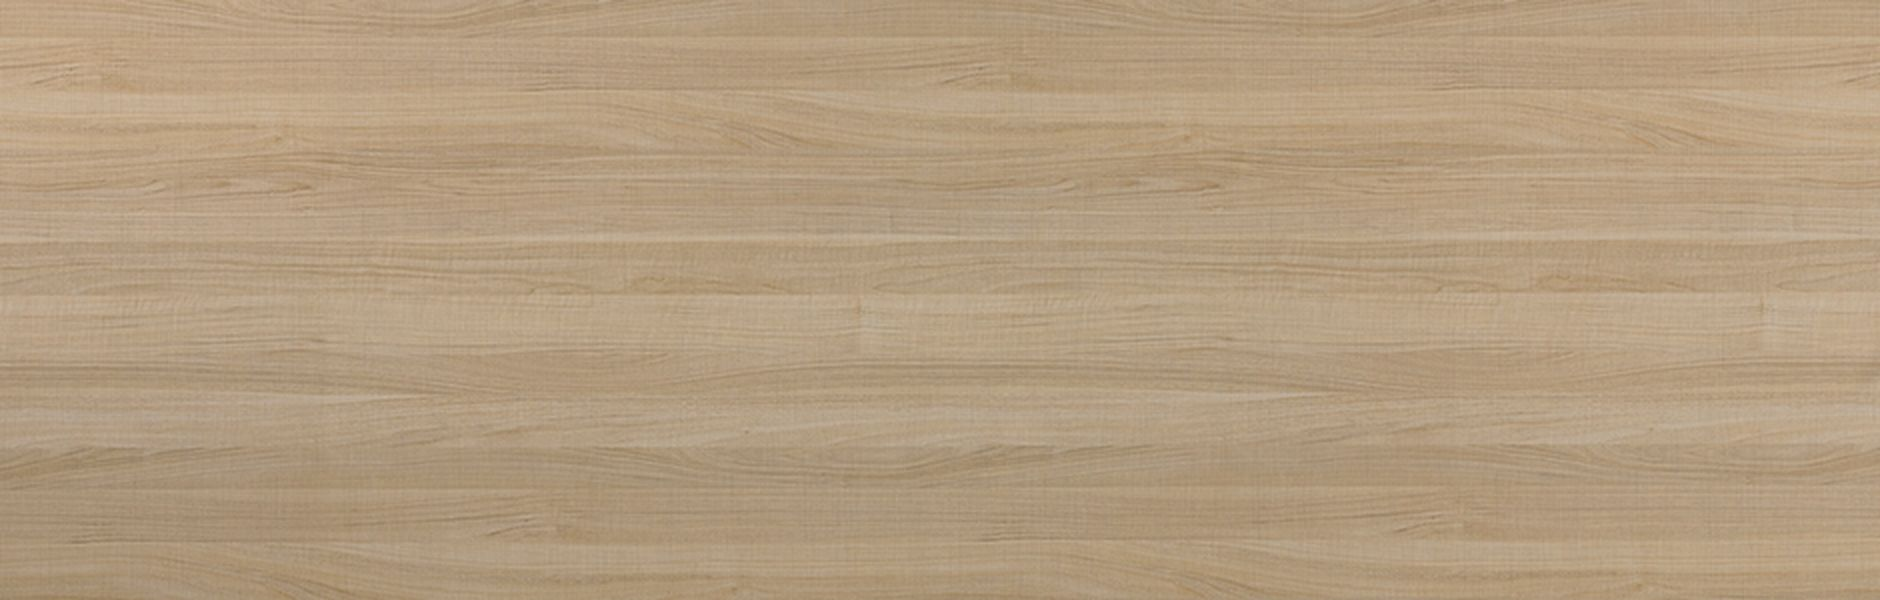 Фото 4 - Декоративные панели Sibu WoodLine maple